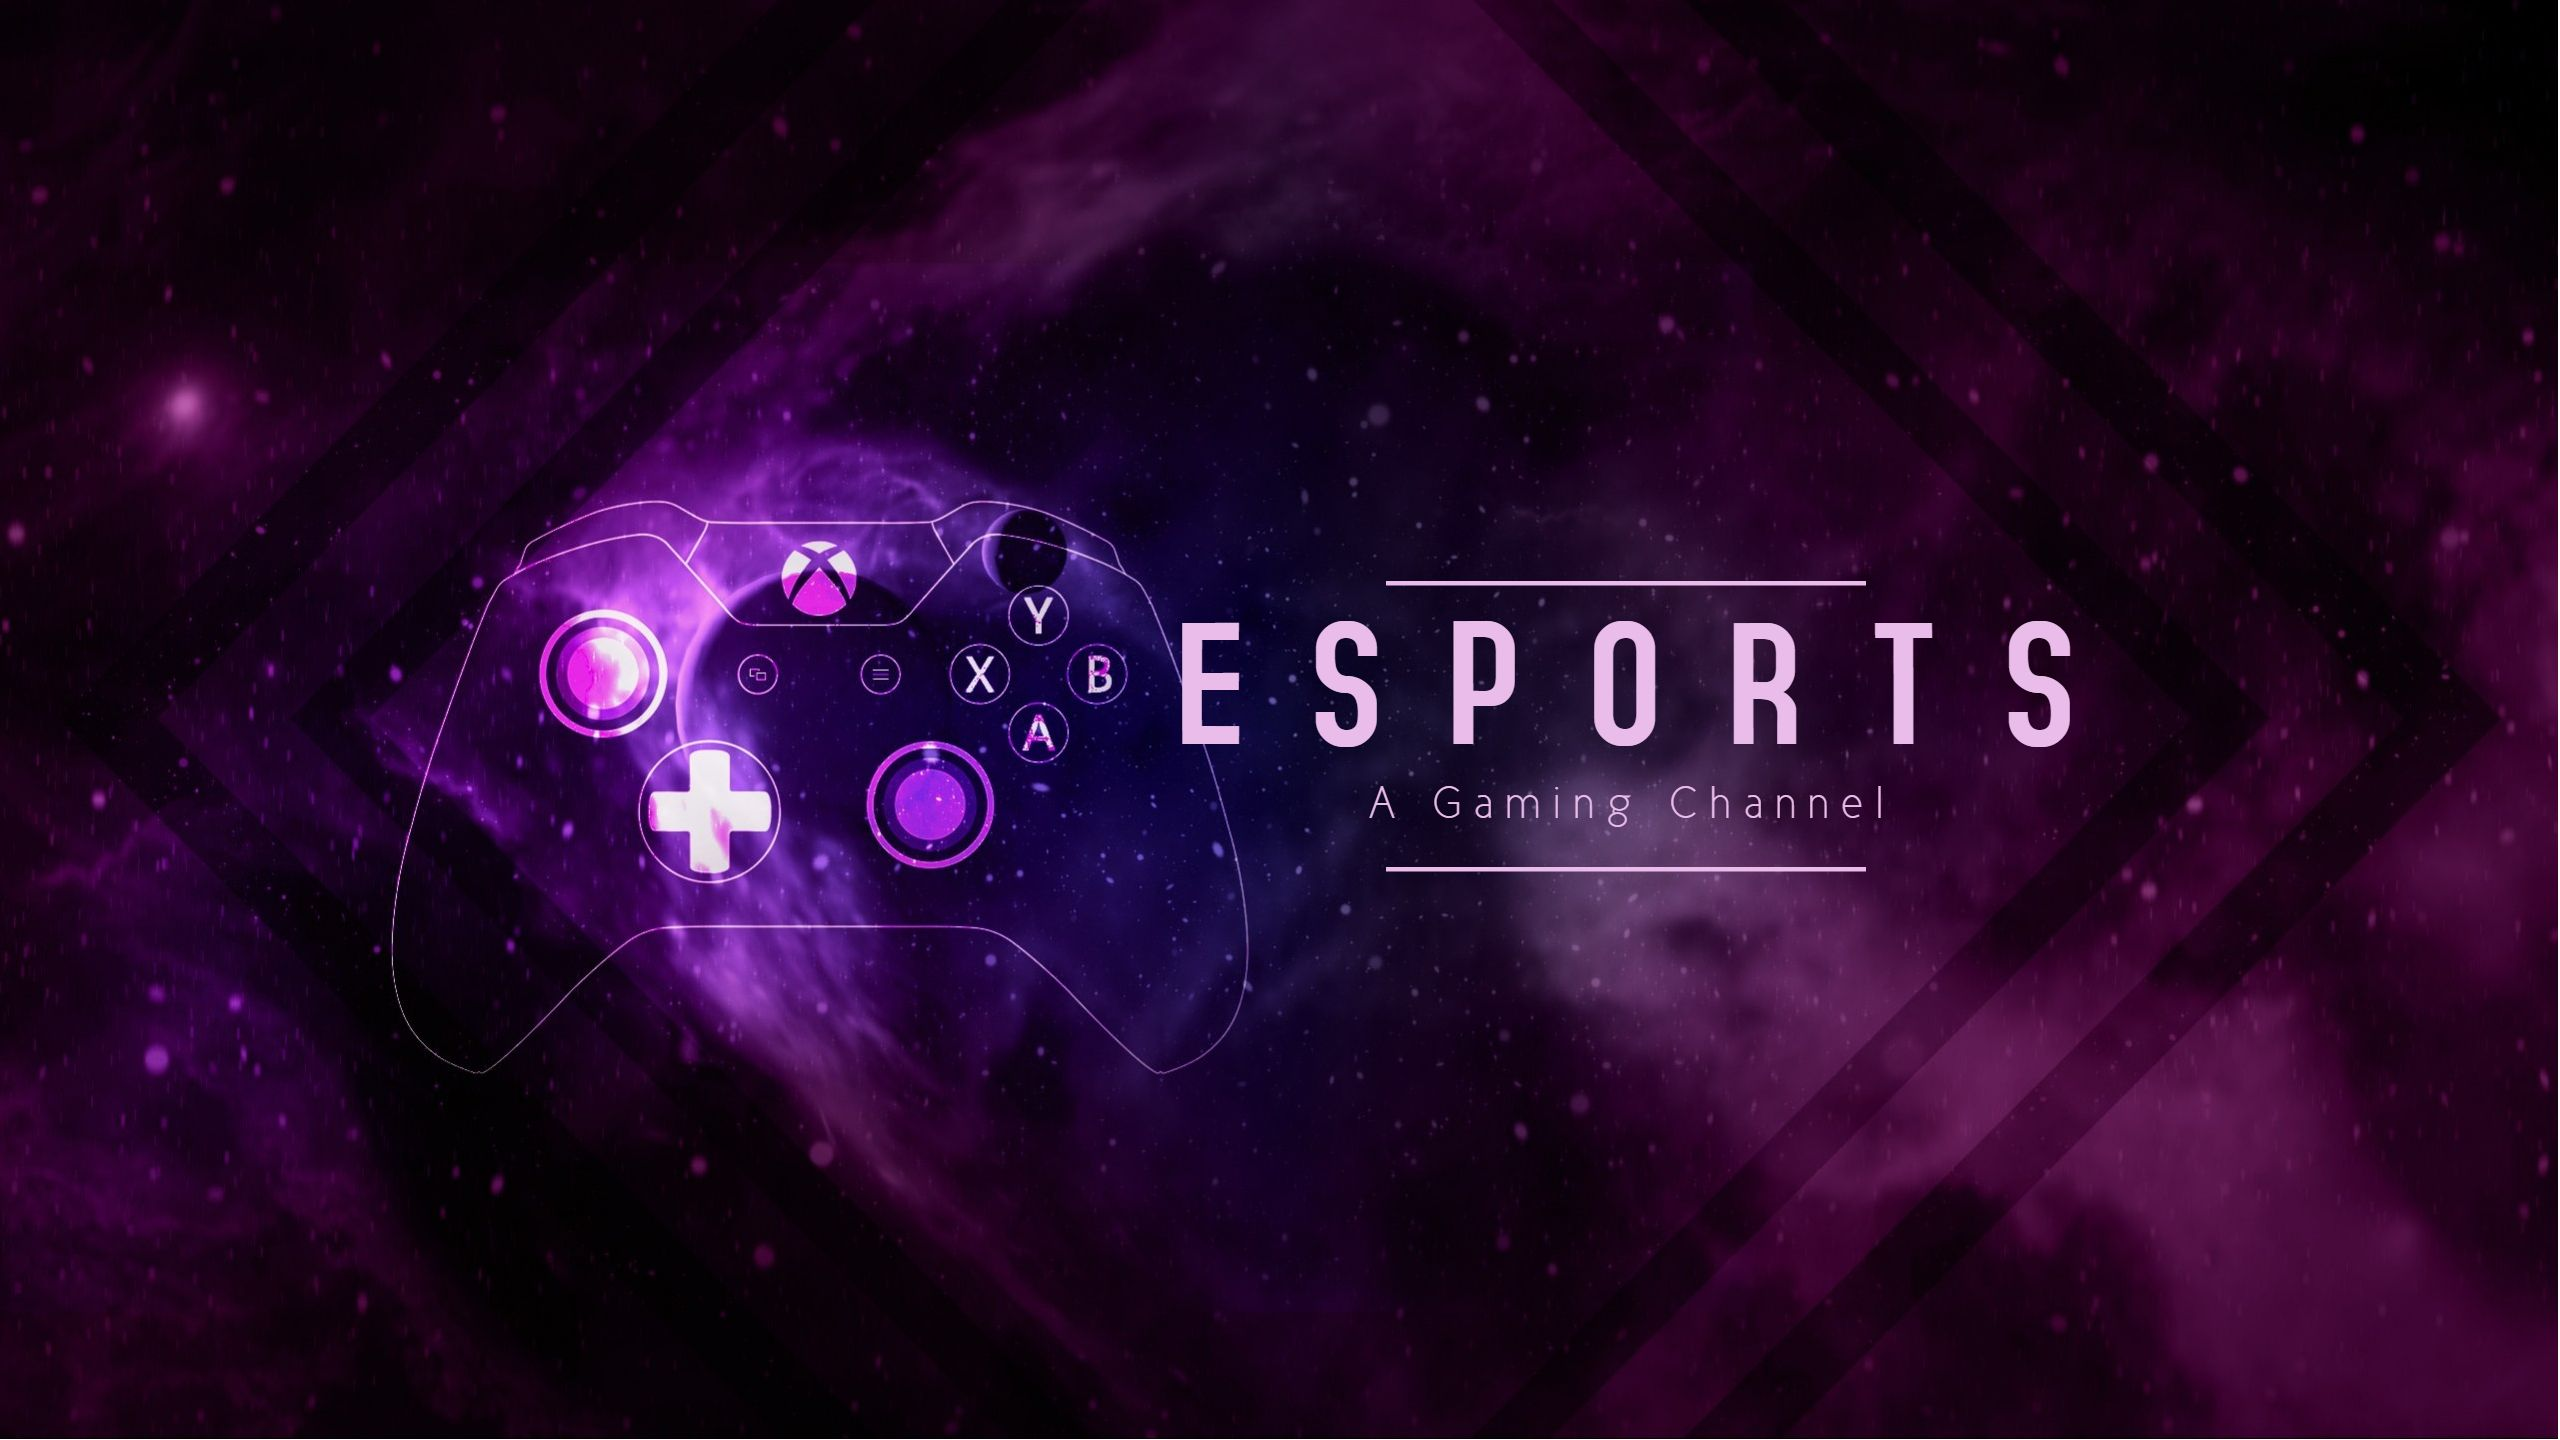 Esports YouTube gaming cover art template design..